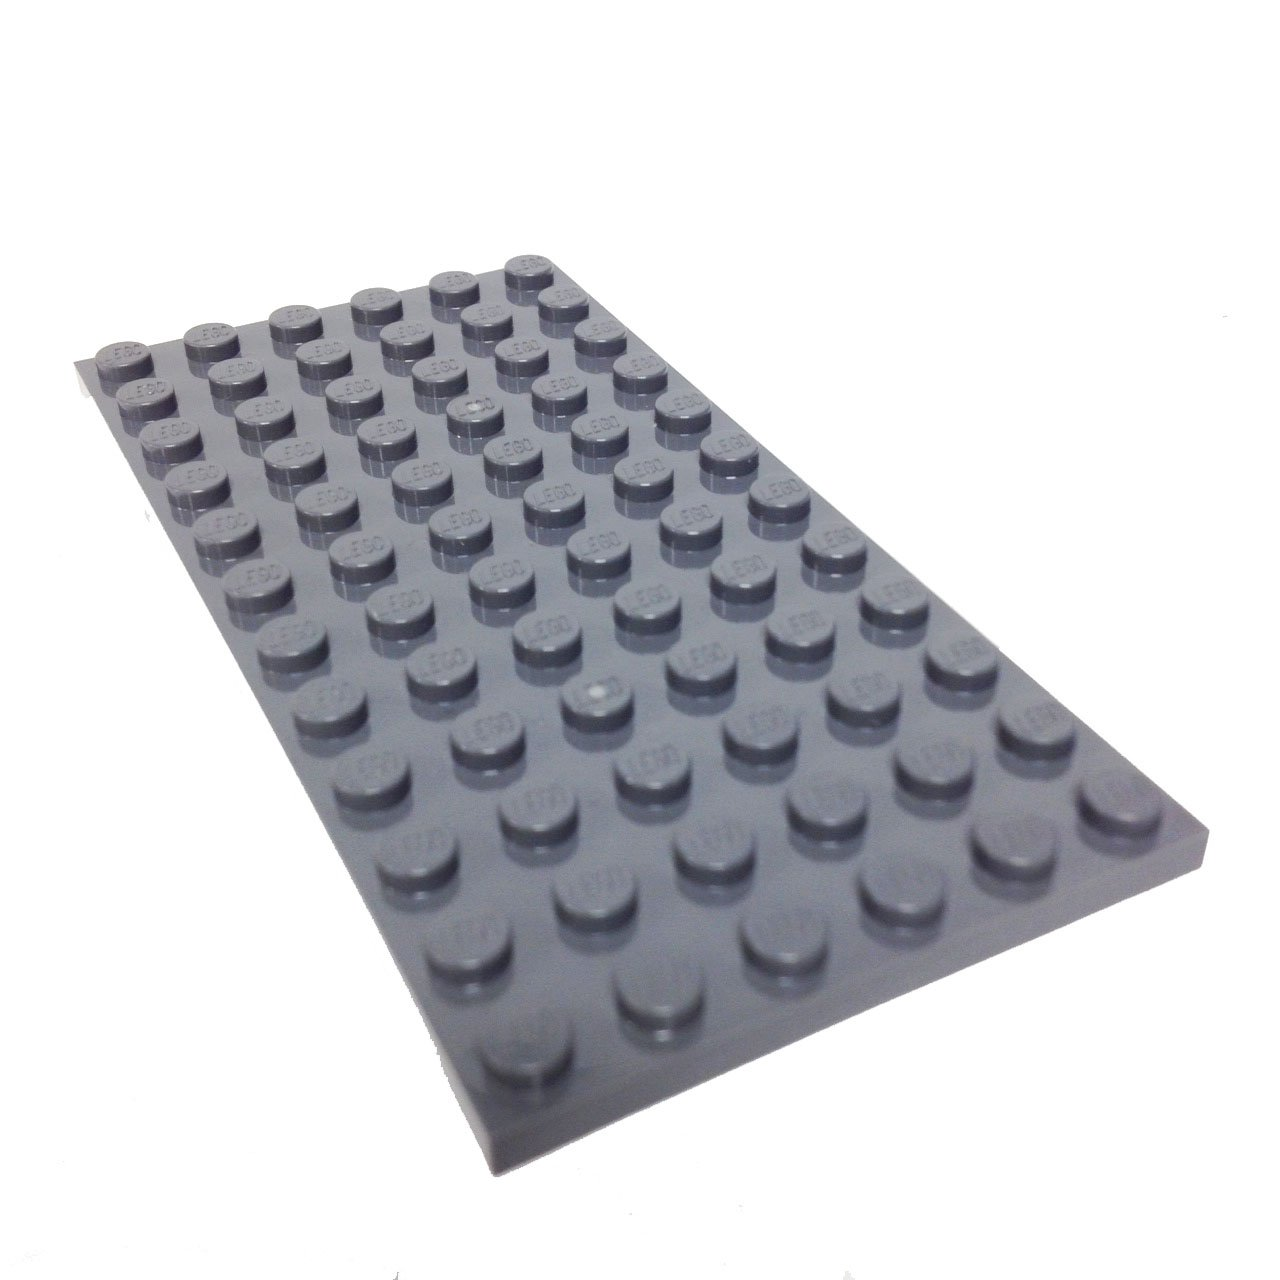 Lego Parts Plate 6 X 12 Dark Bluish Gray Toys Games Drawbridge Defense 7079